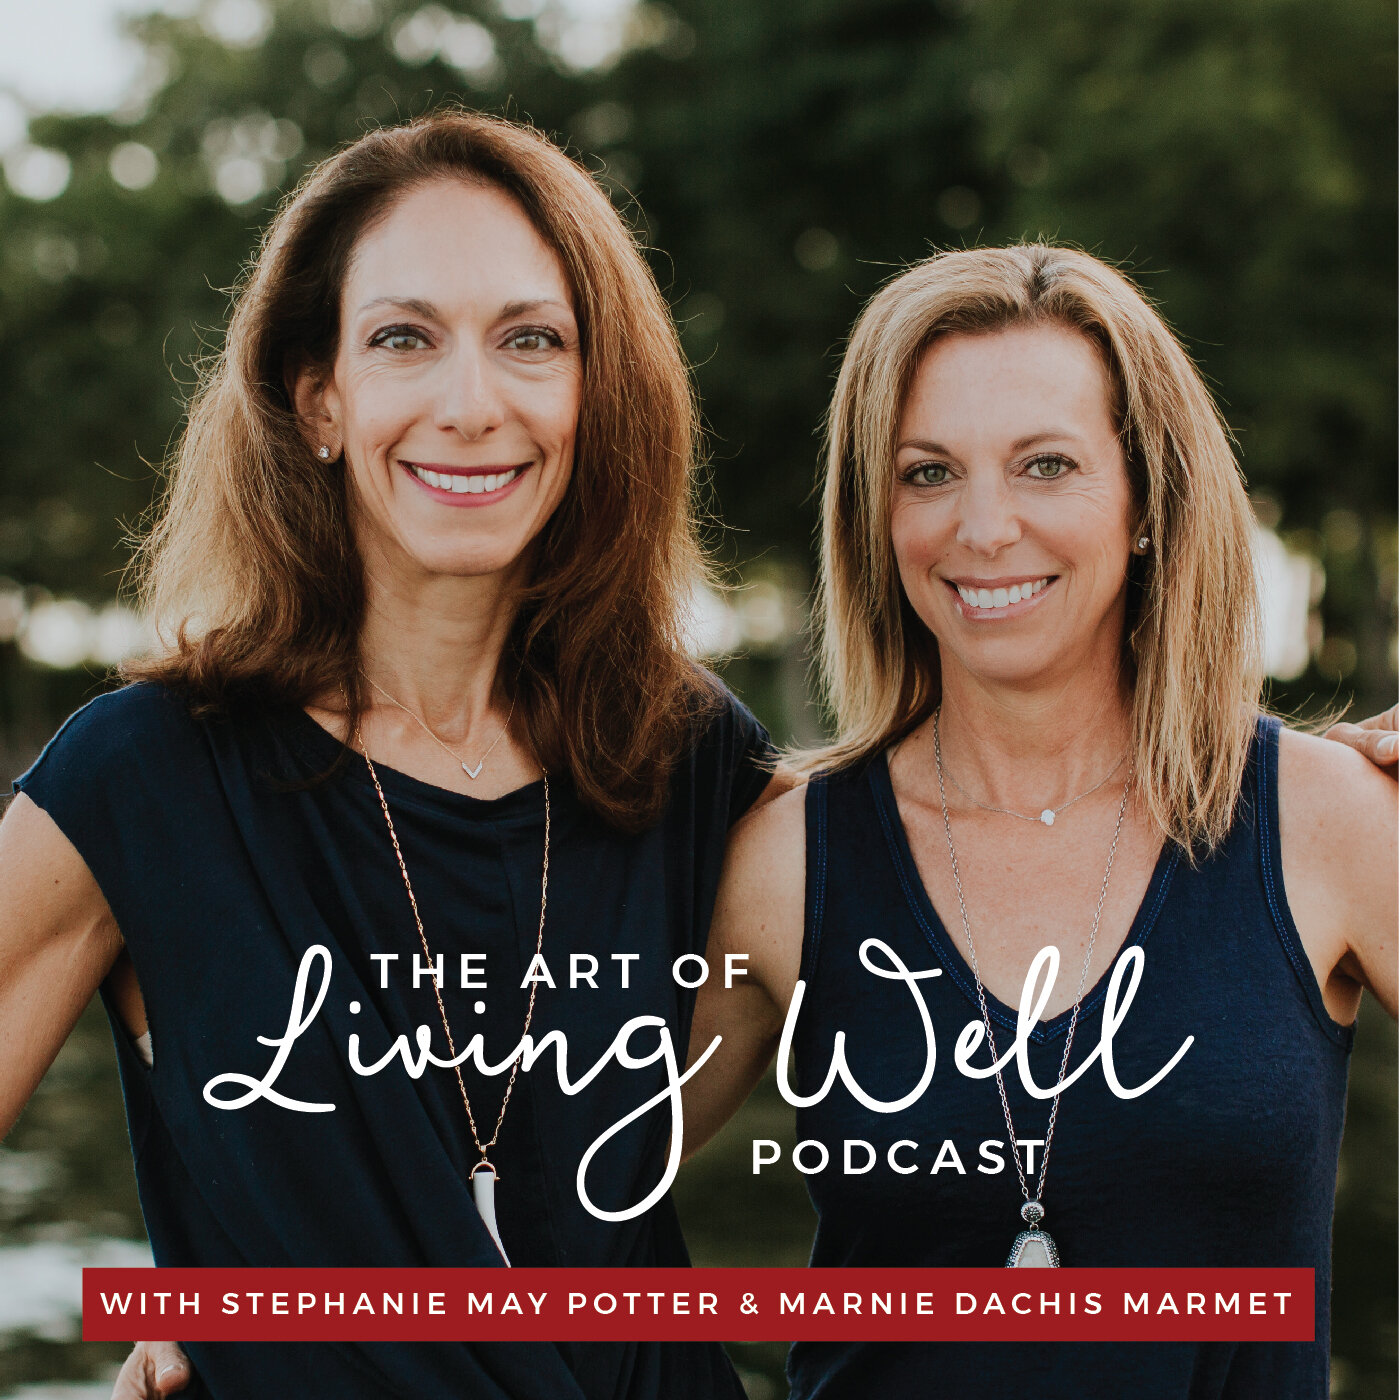 - Listen to my podcast with Marnie Dachis Marmet - The Art of Living Well Podcast.